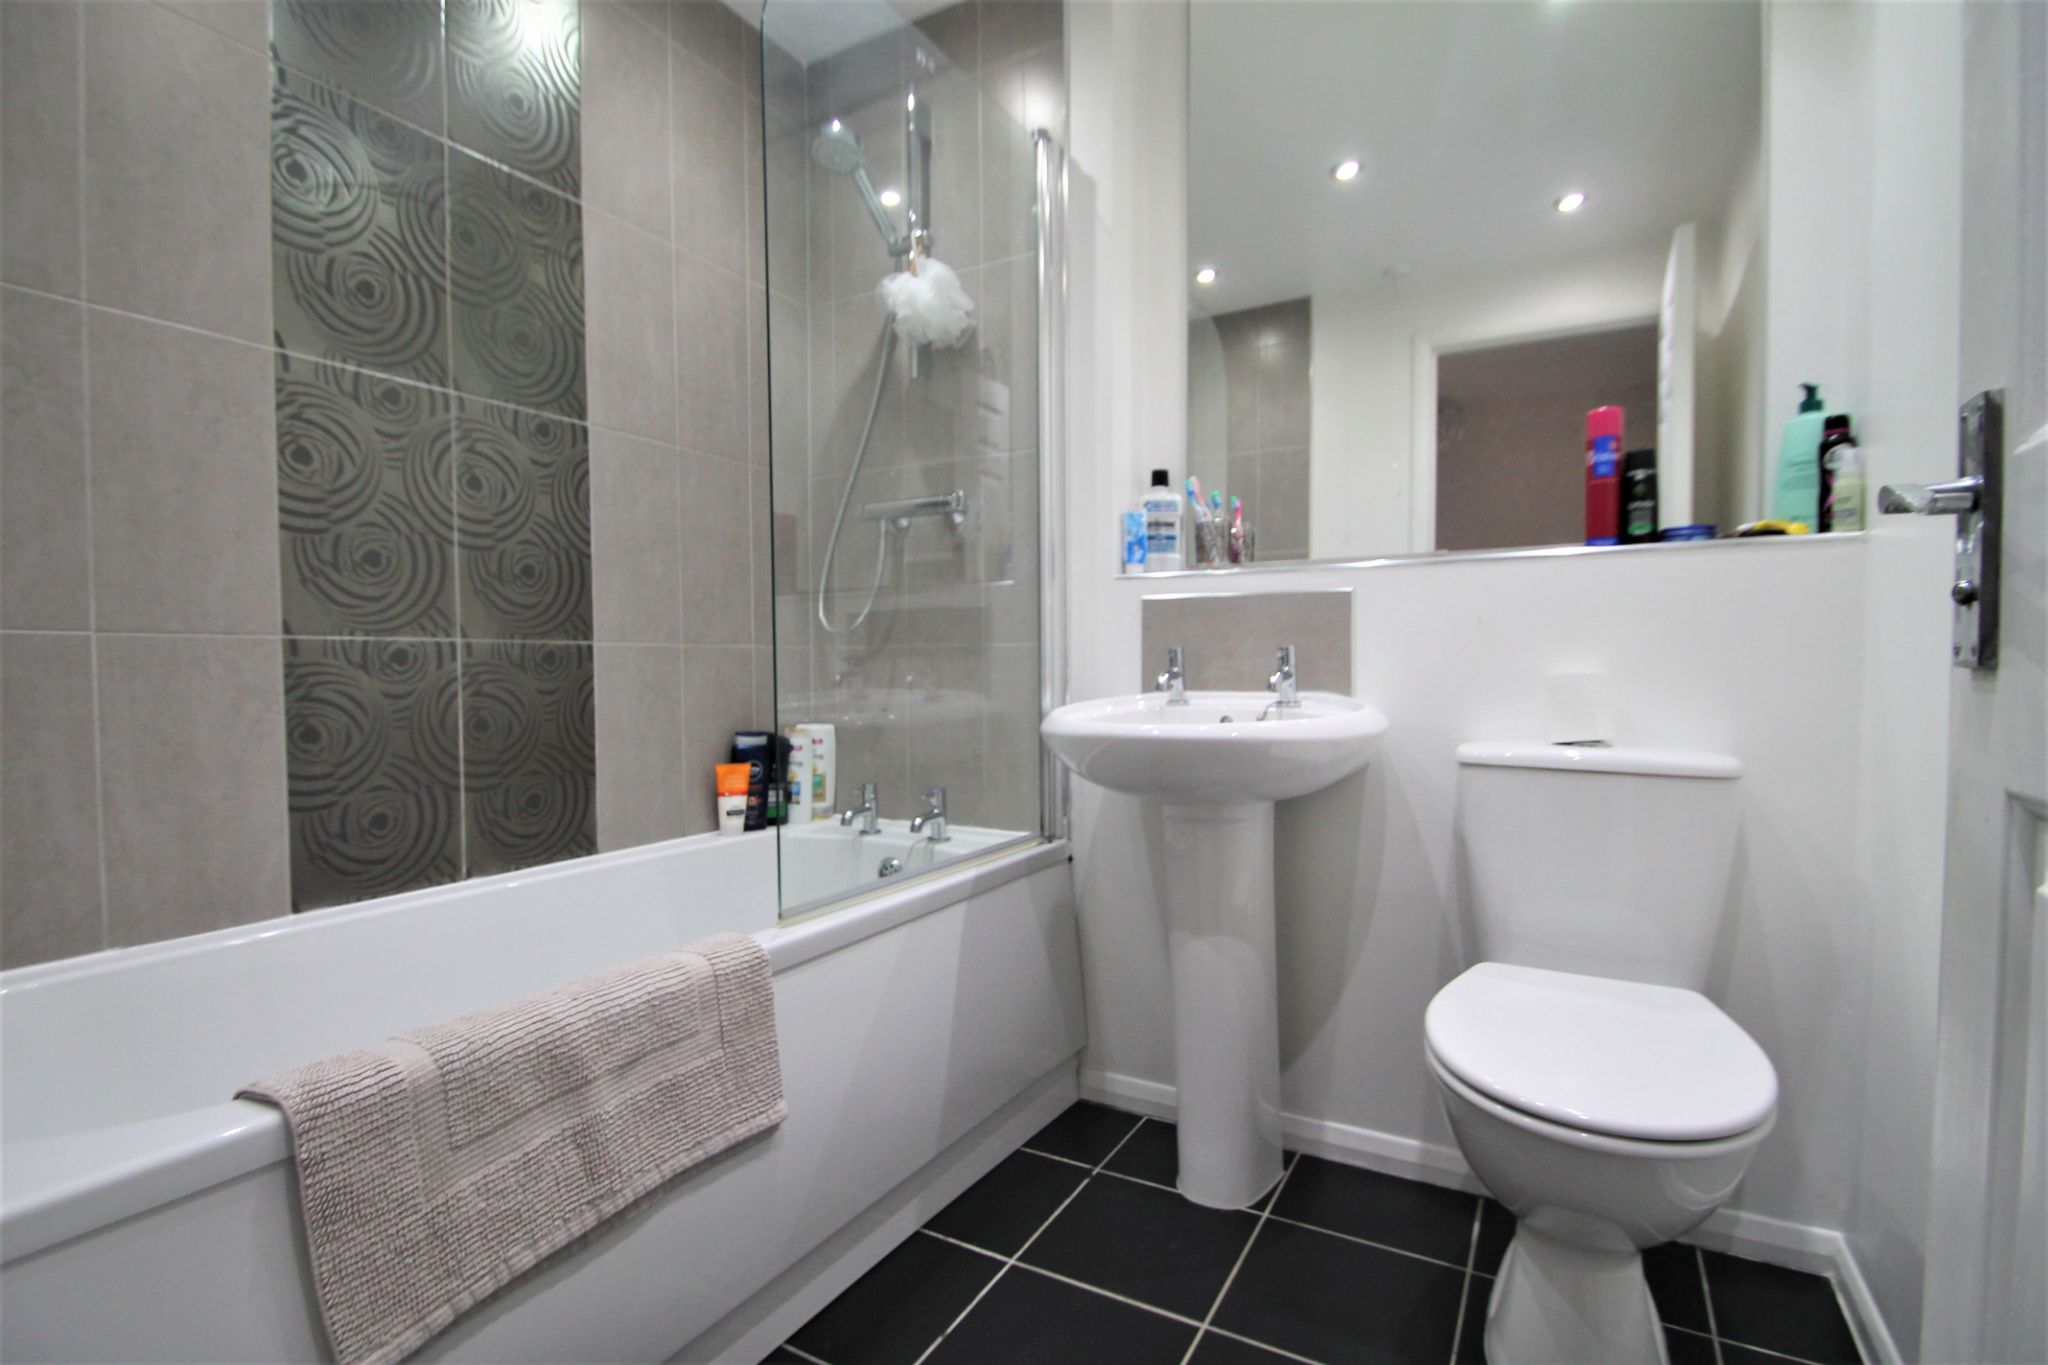 2 Bedroom Mid Terraced House For Sale - Bathroom